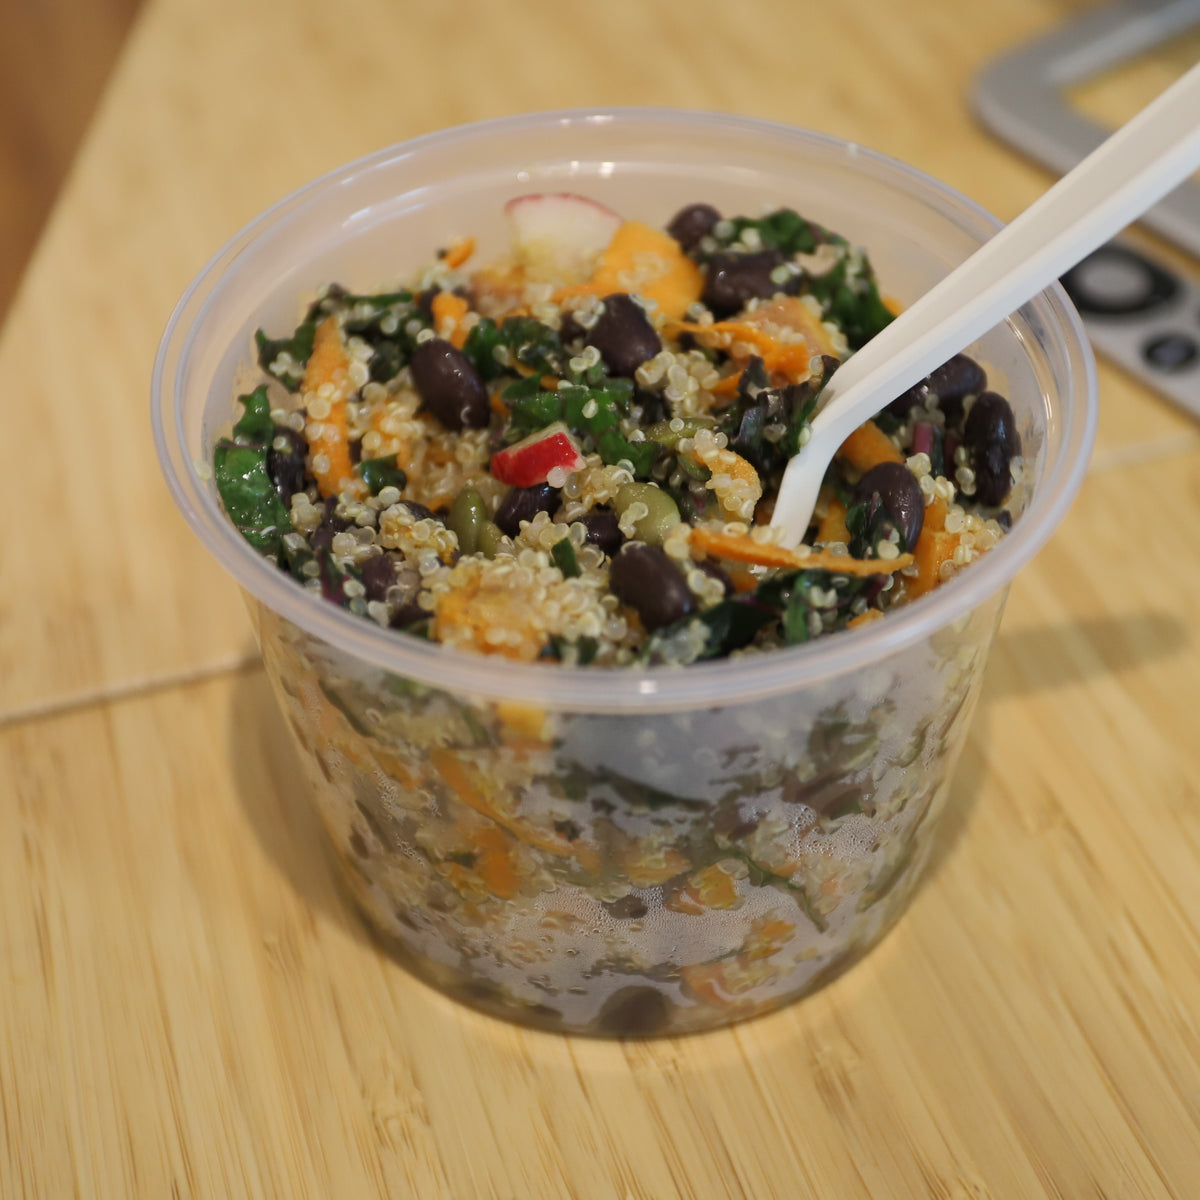 Black Bean Quinoa Salad with Kale & Maple Roasted Yams (16 oz)